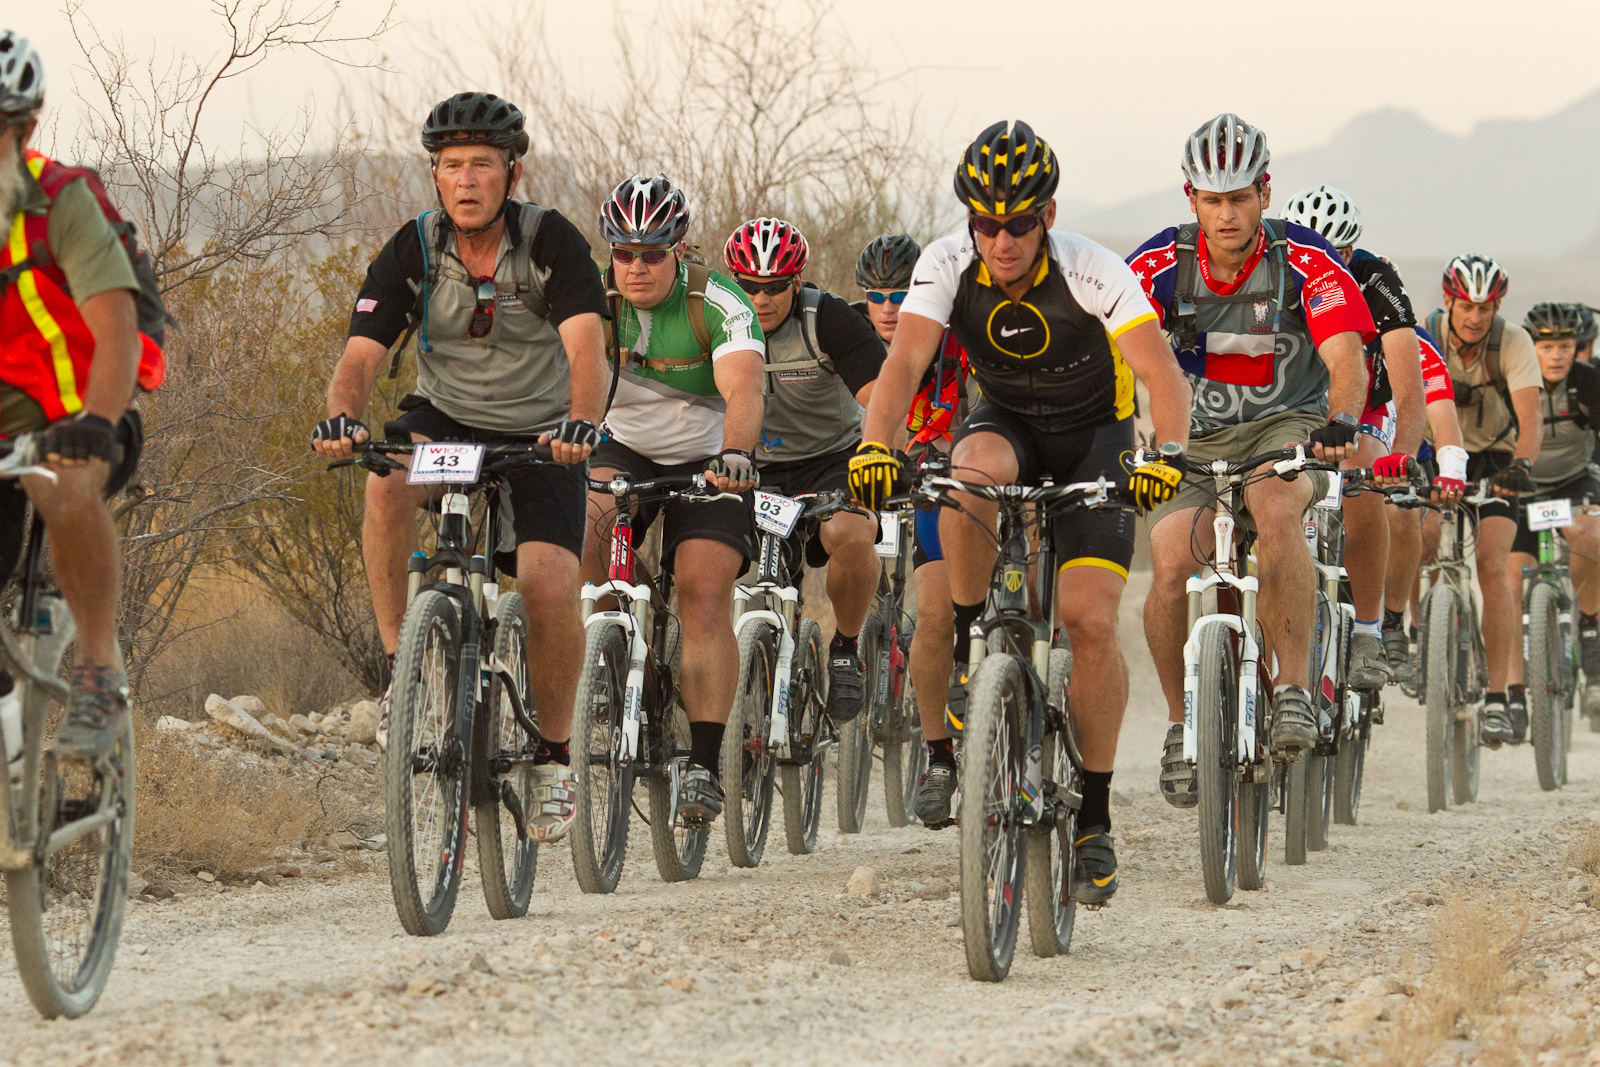 President George W. Bush to Host 2nd Annual Warrior 100k Mountain Bike Ride for Wounded Warriors